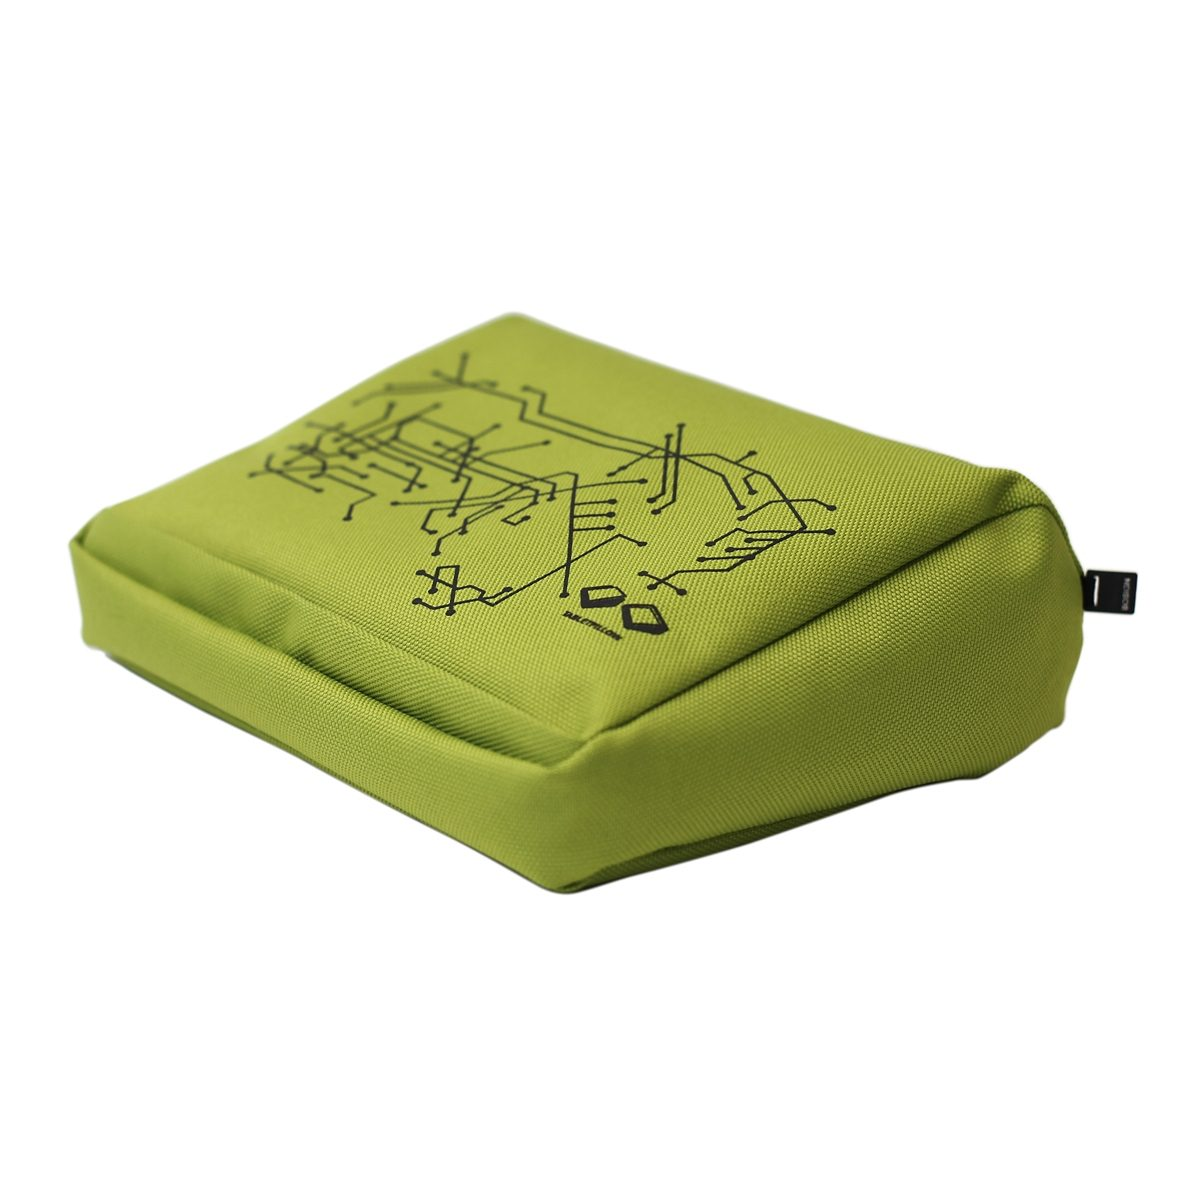 BOSIGN Bosign TABLETPILLOW lime